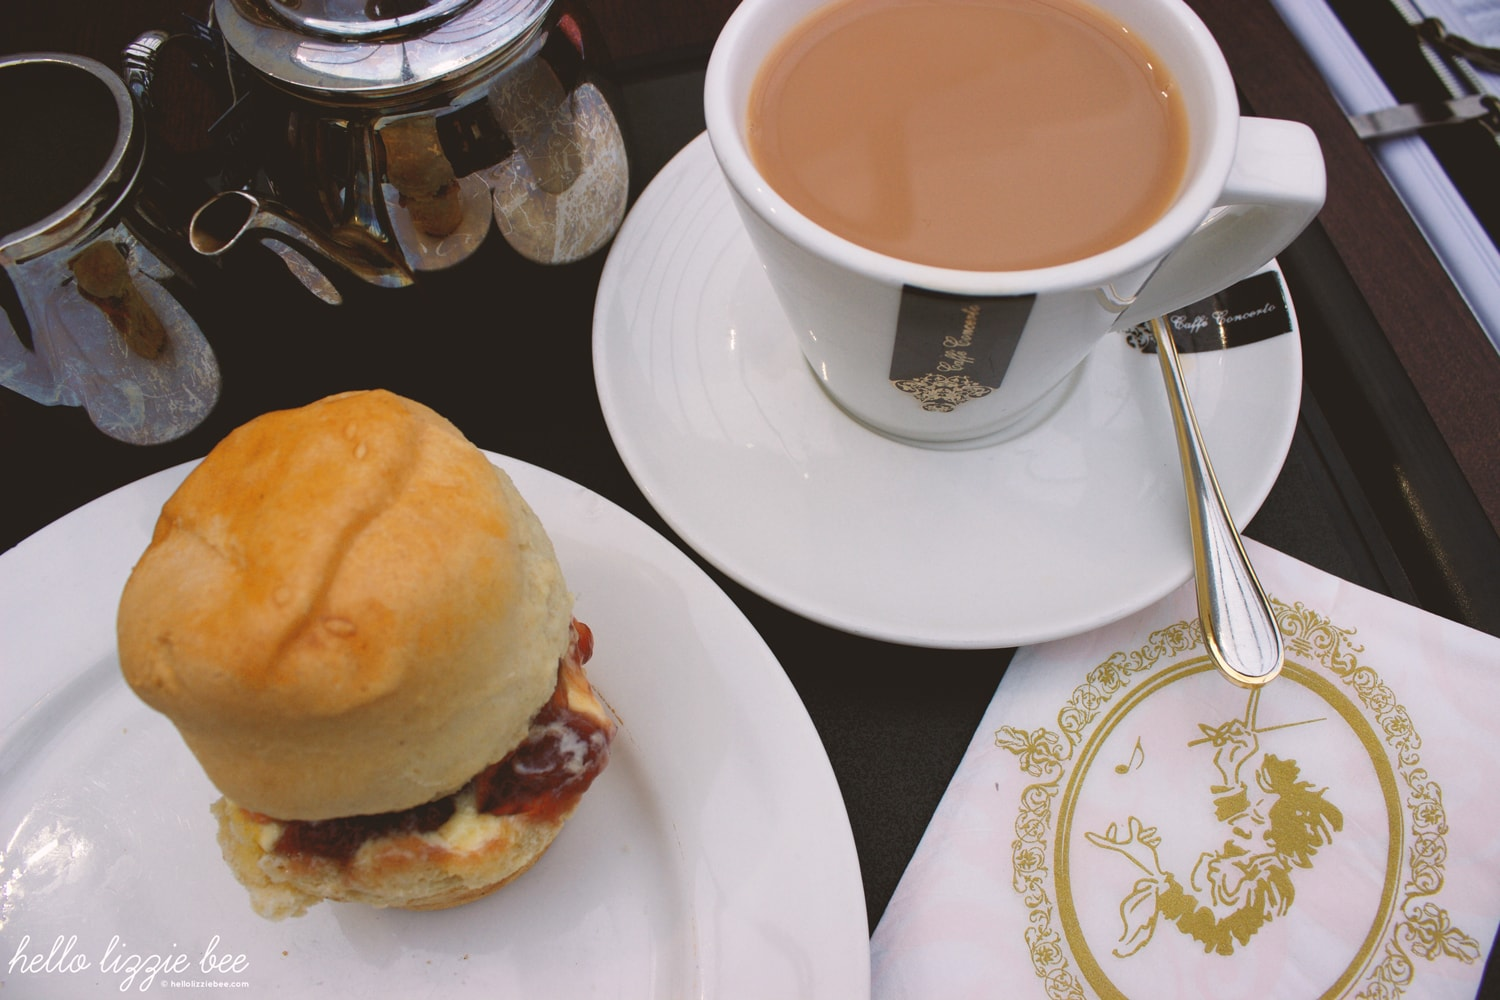 afternoon tea at Caffe Concerto